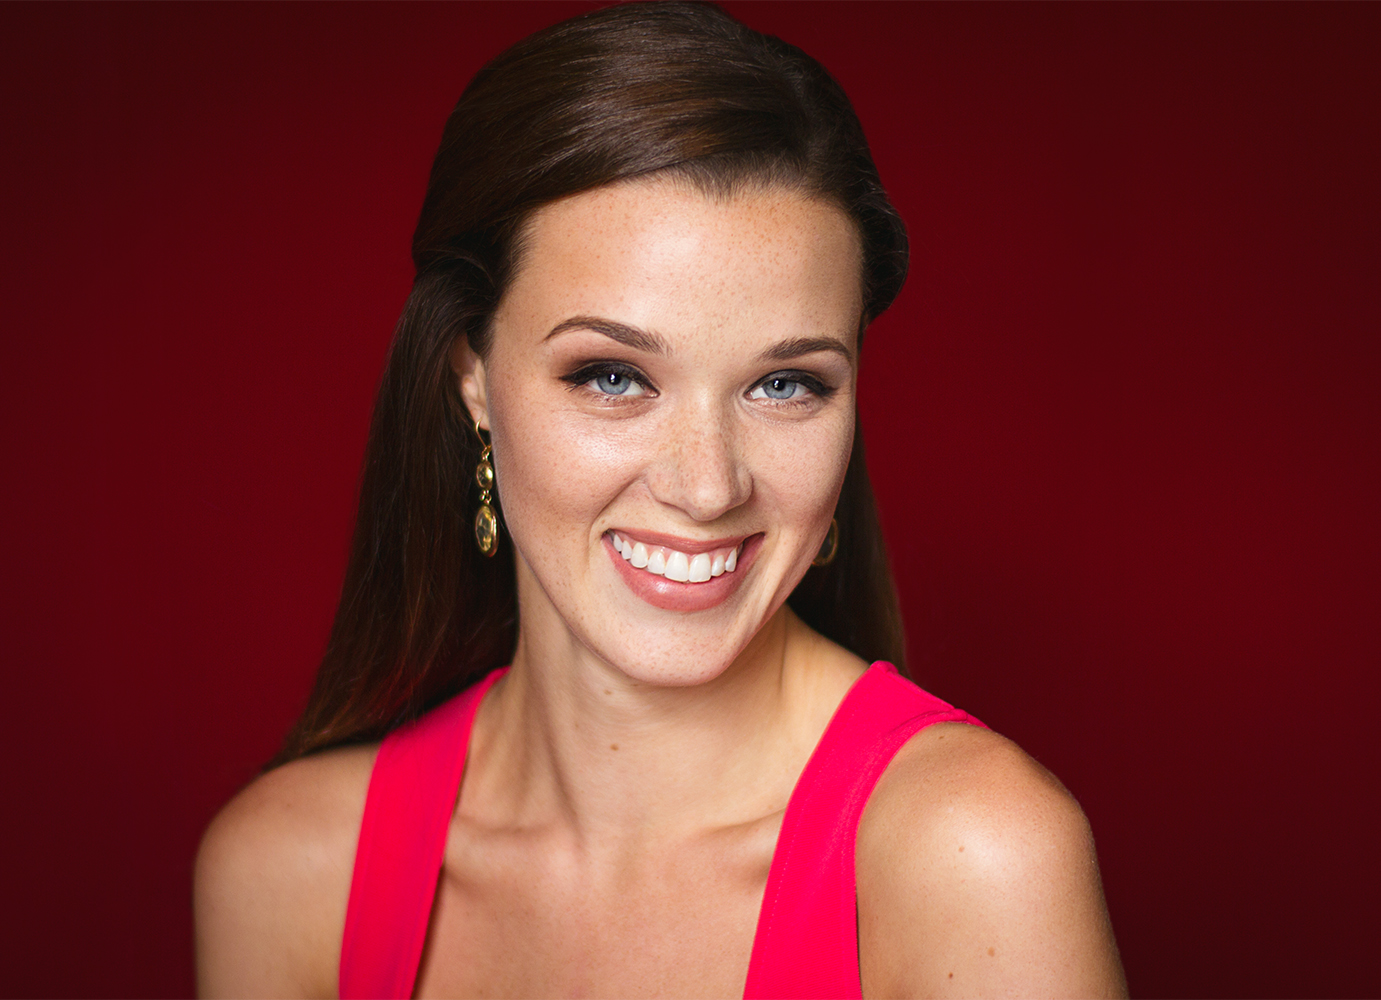 Jacqueline Hatch headshot 2 by Erica Derrickson - no watermark.jpg